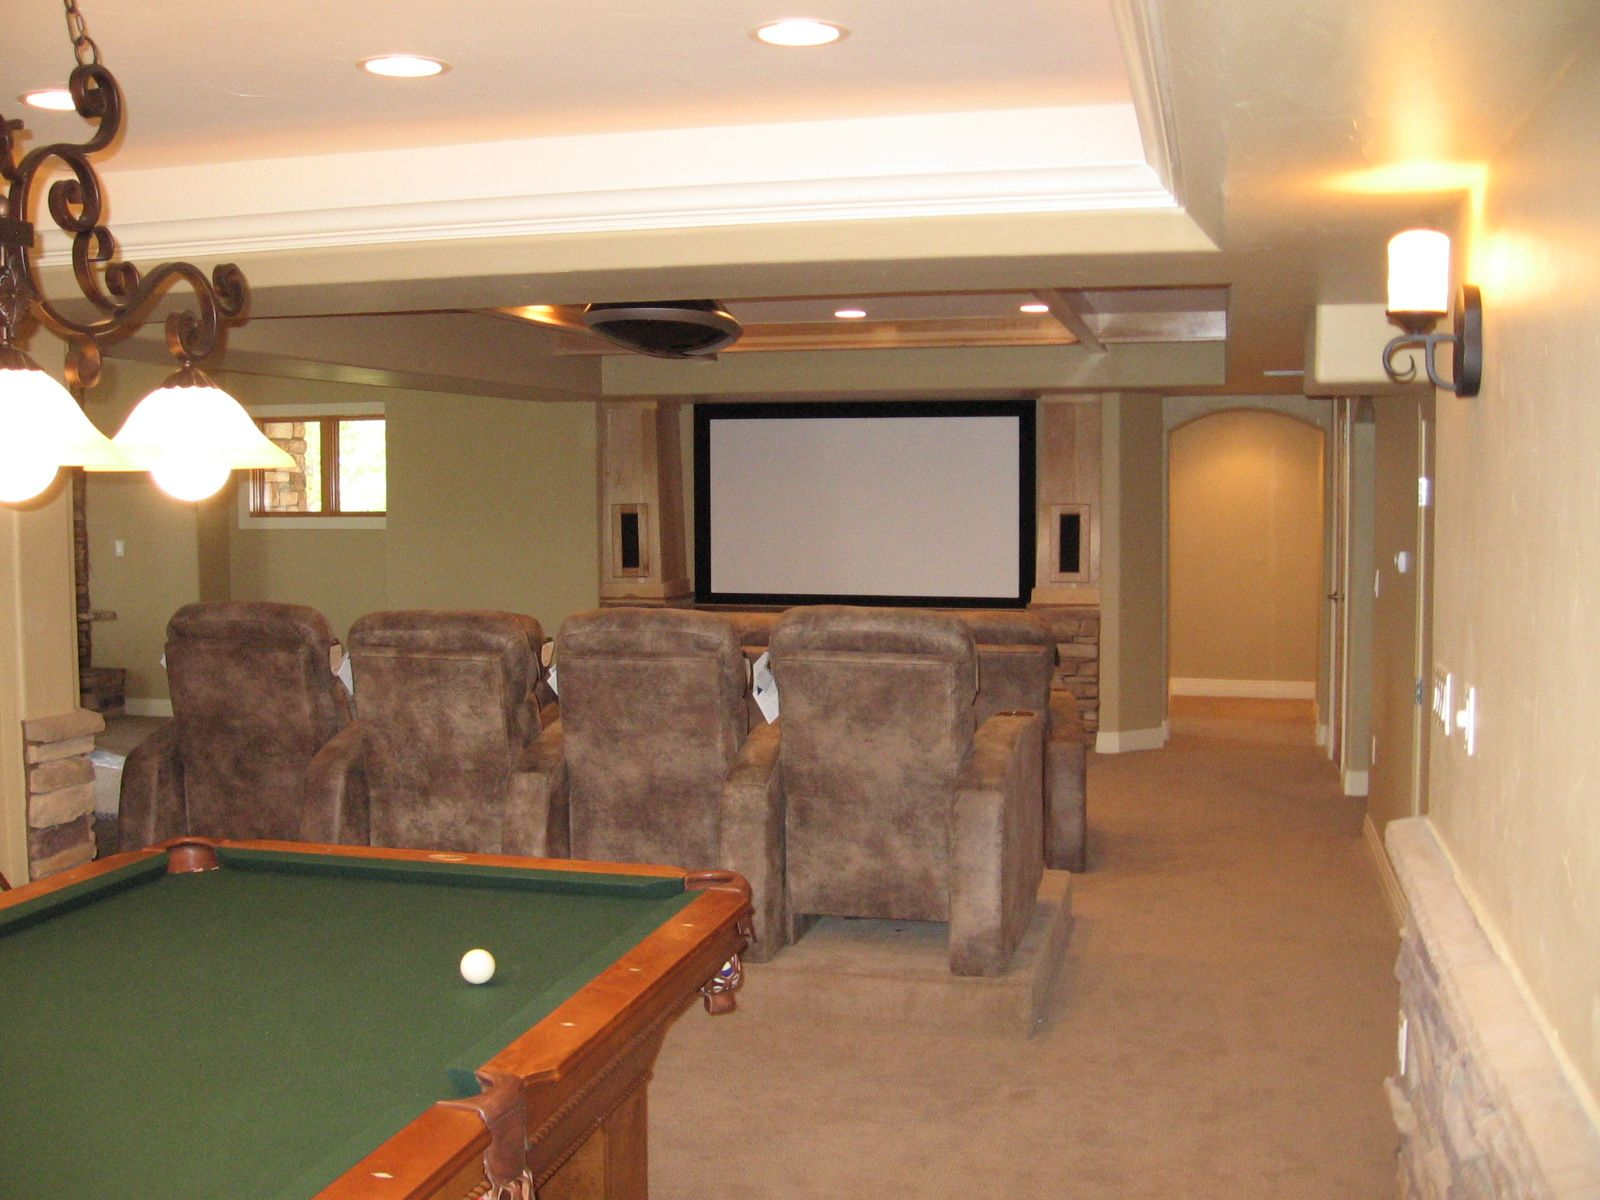 finished basement ideas basement design basement finishing remodeling home - Cost To Finish A Basement